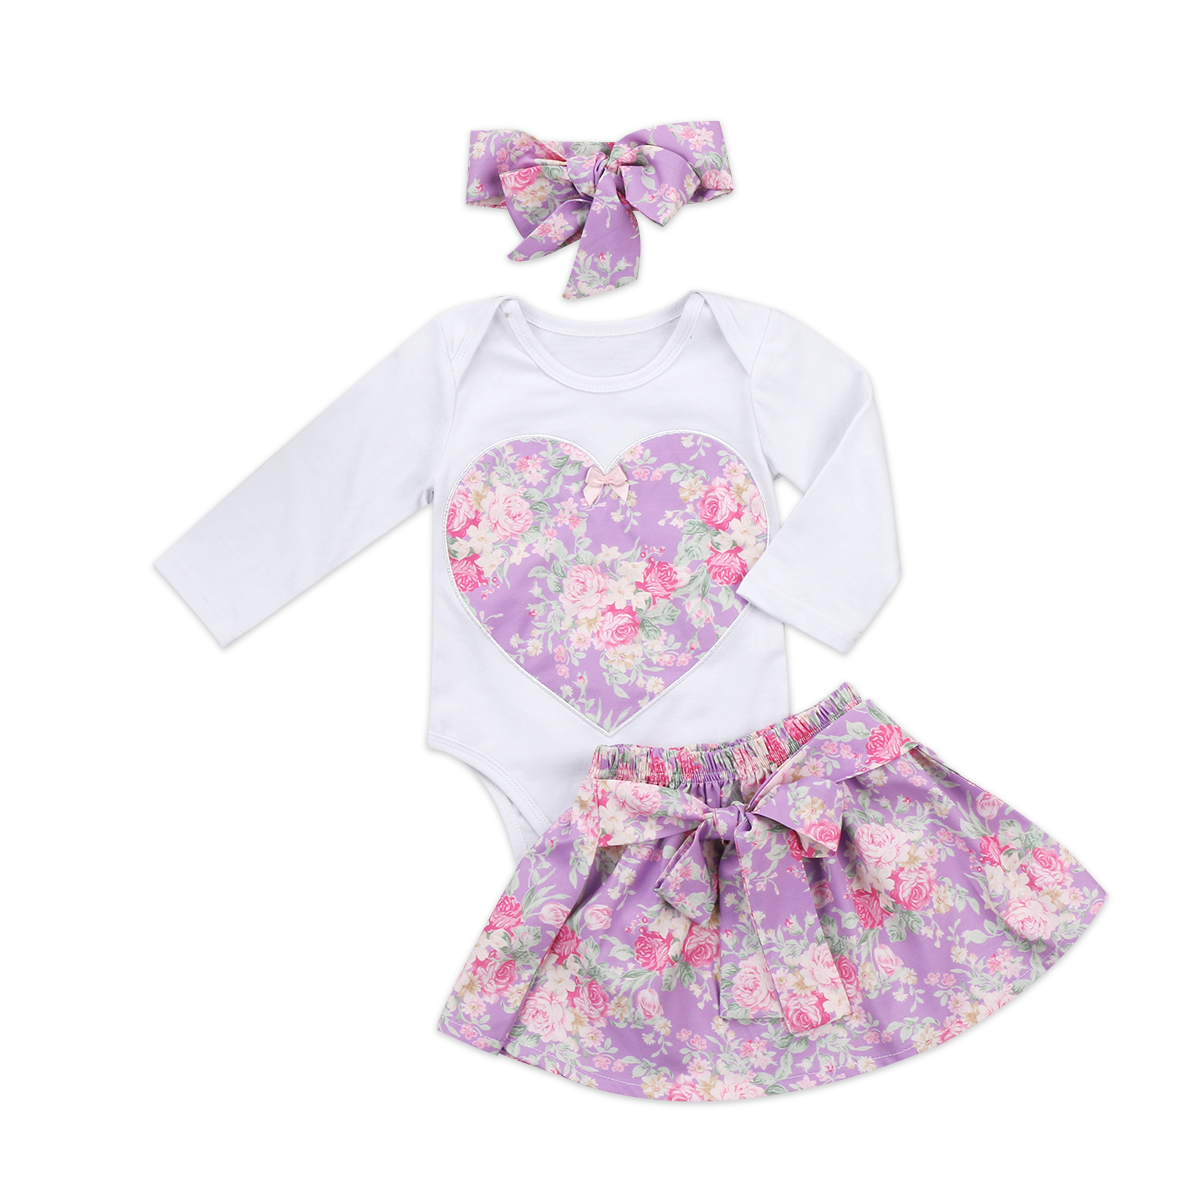 Baby Girls Clothes Sets Outfits Long Sleeve Tops Bodysuits Cotton Flower Skirts Headbands Floral 3pcs Clothing Baby Girl 2016 new fashion boutique outfits for omika baby girls sets with 2 pcs cute print long sleeve tops bow tutu skirts size 4 12y